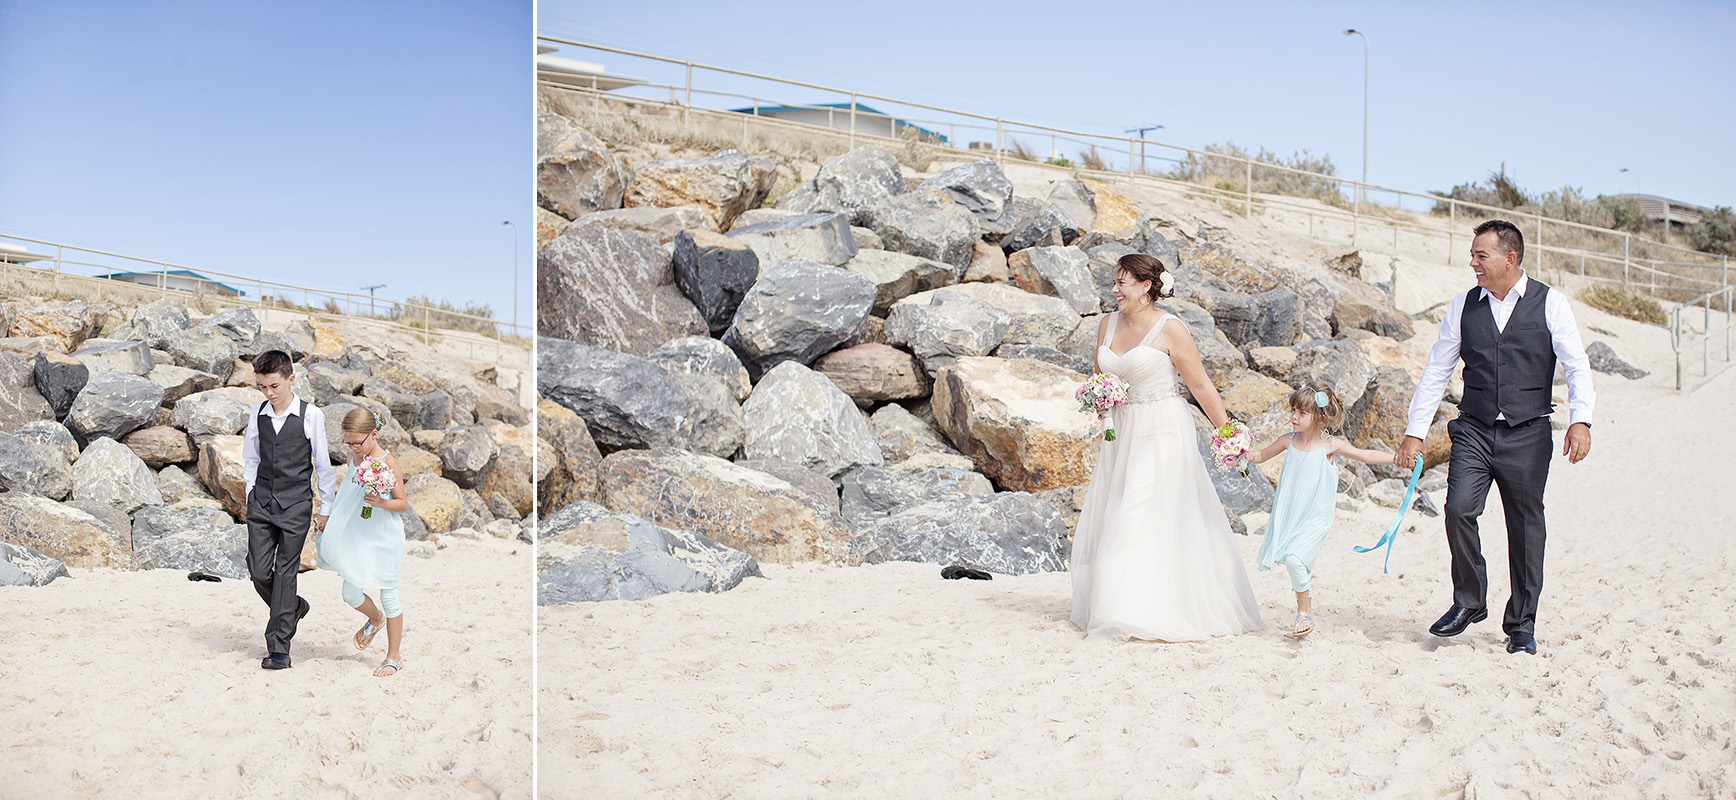 Adelaide Beach Wedding 010.jpg